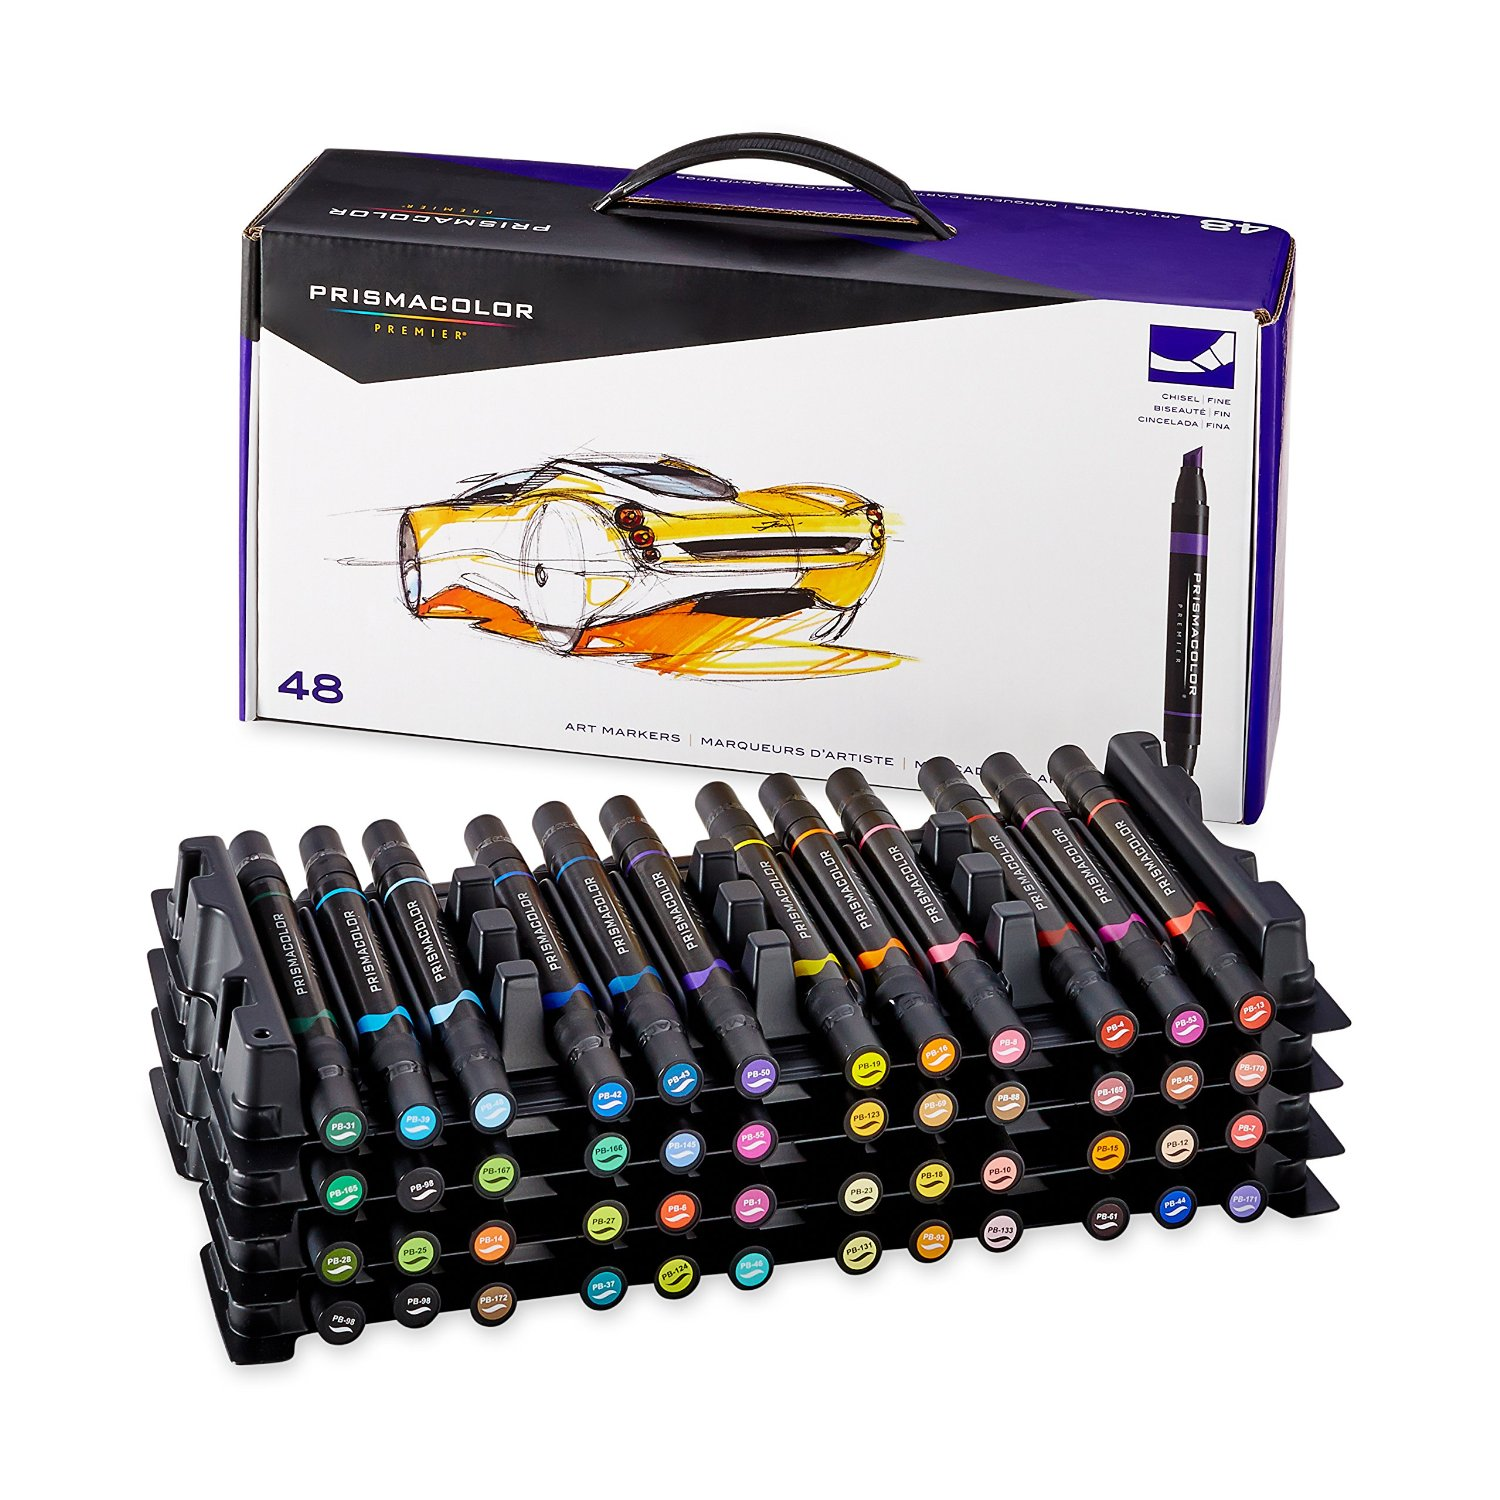 Prismacolor Premier Double Ended Art Markers, 48 Colored Markers(3611)